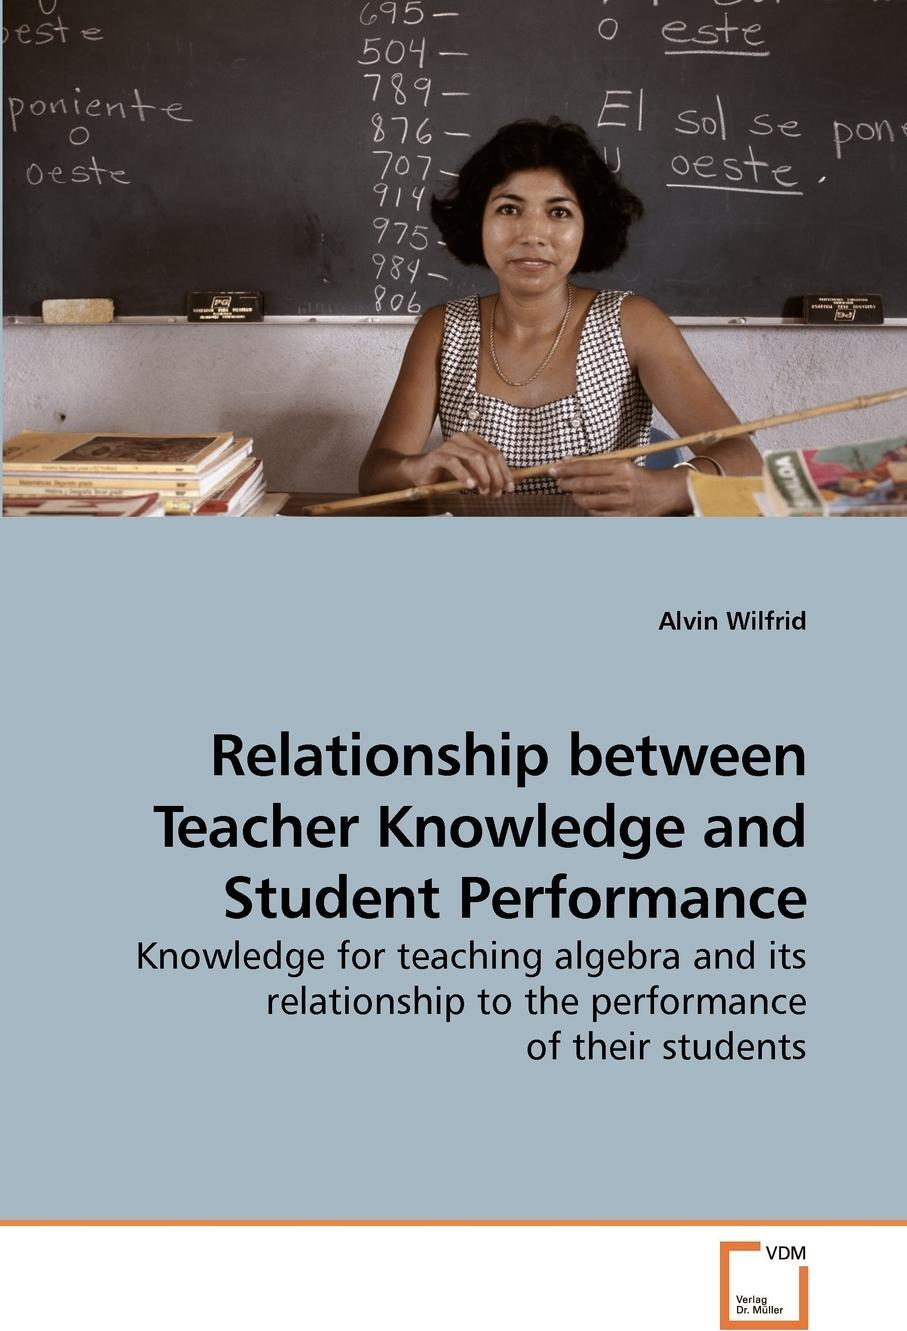 Relationship between Teacher Knowledge and Student Performance